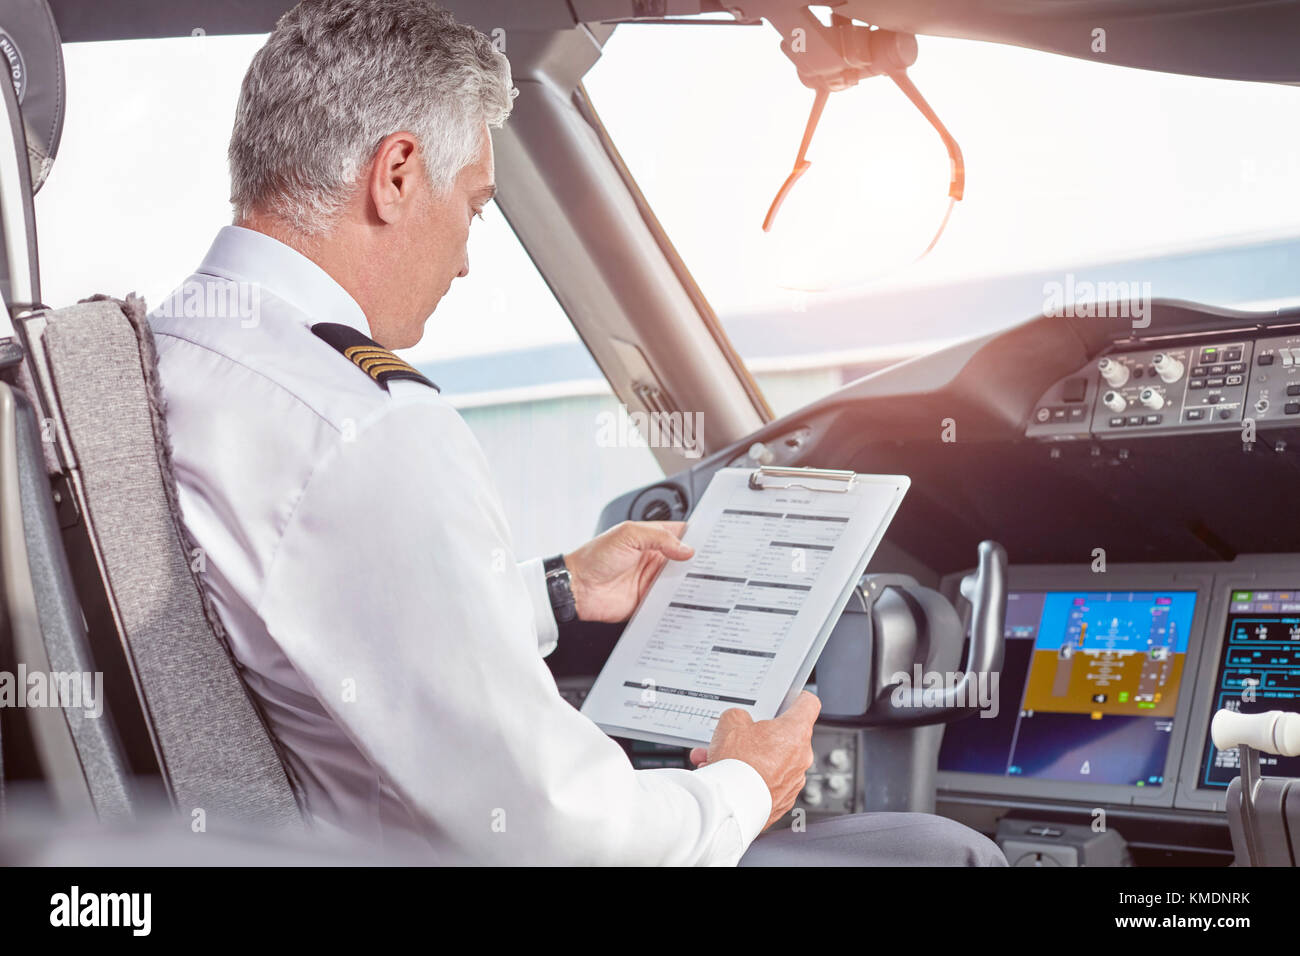 Male pilot with clipboard preparing in airplane cockpit - Stock Image